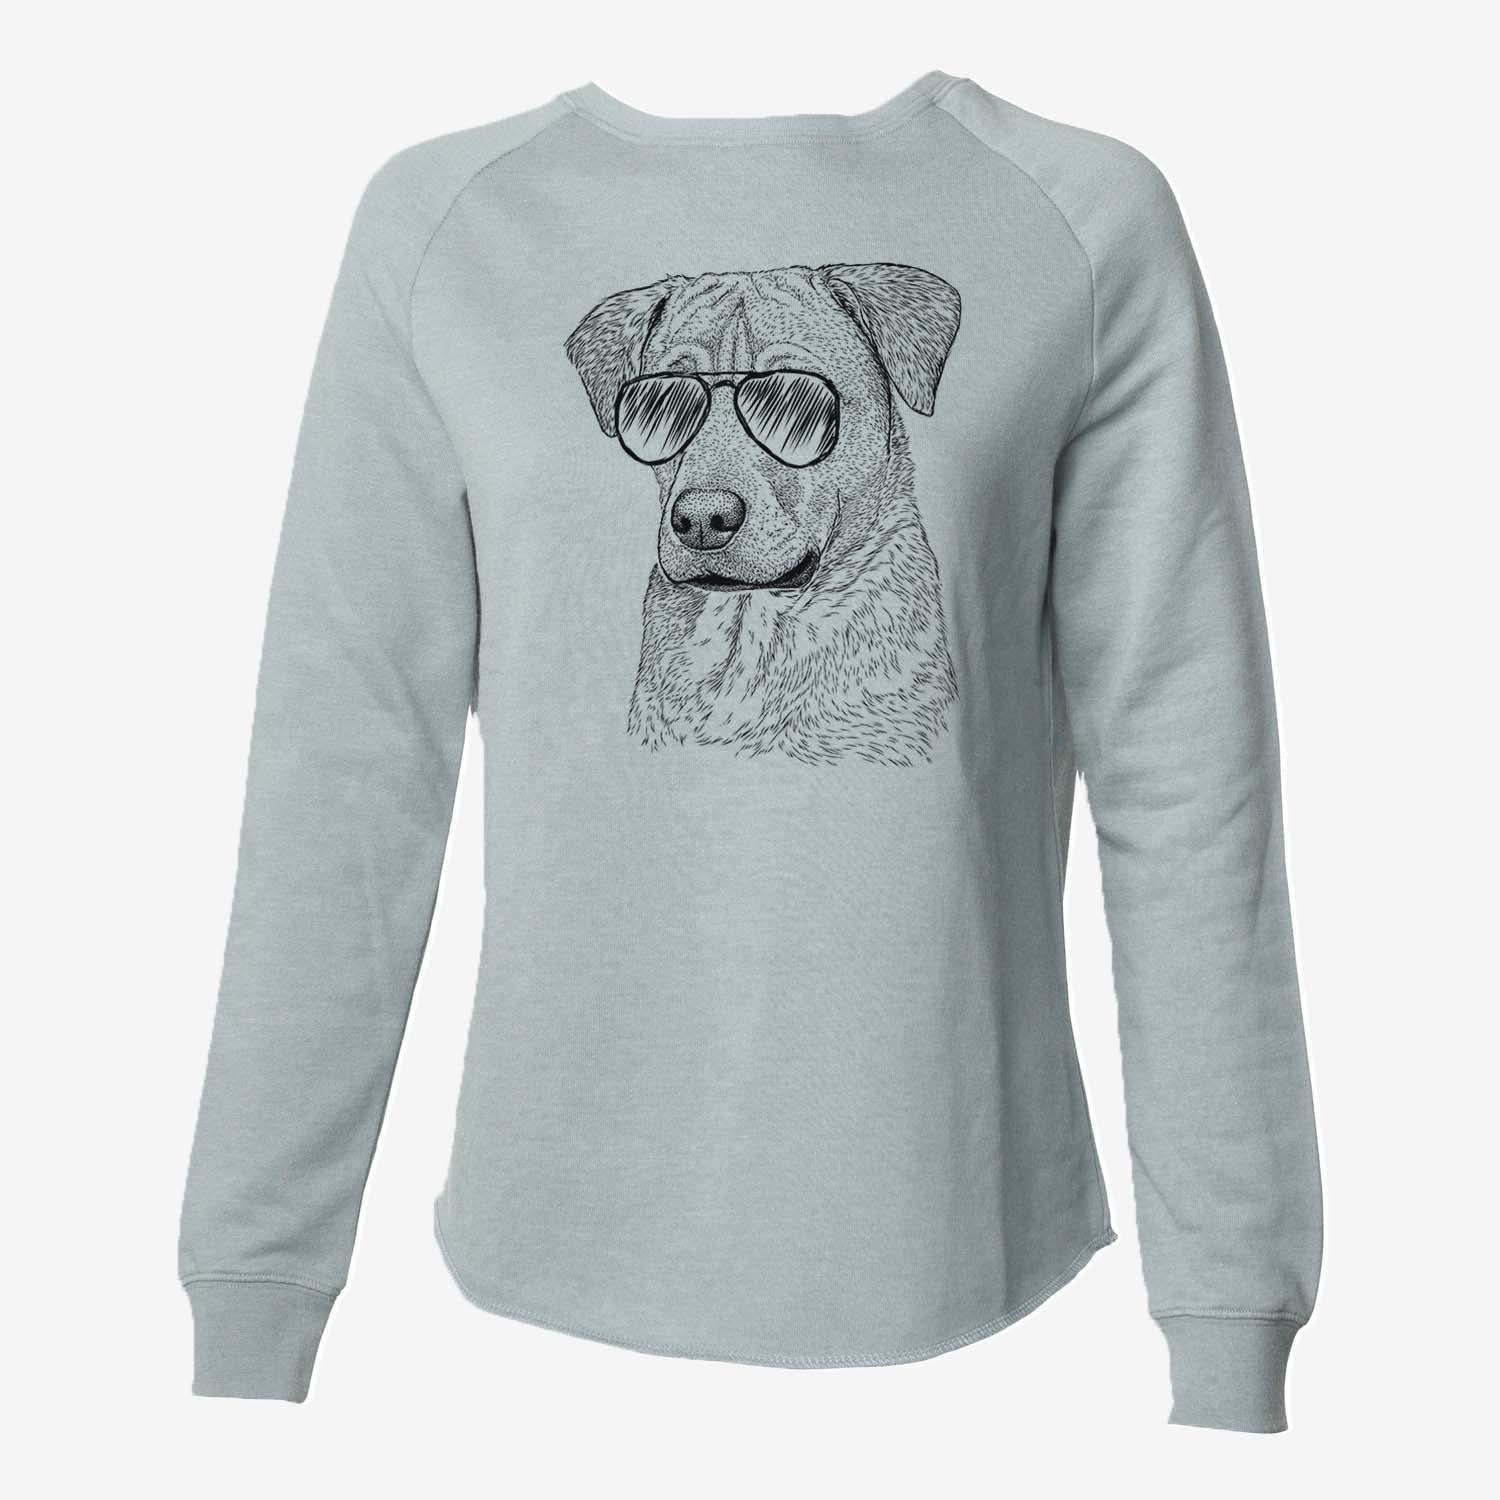 Feta the Mixed Breed - Cali Wave Crewneck Sweatshirt